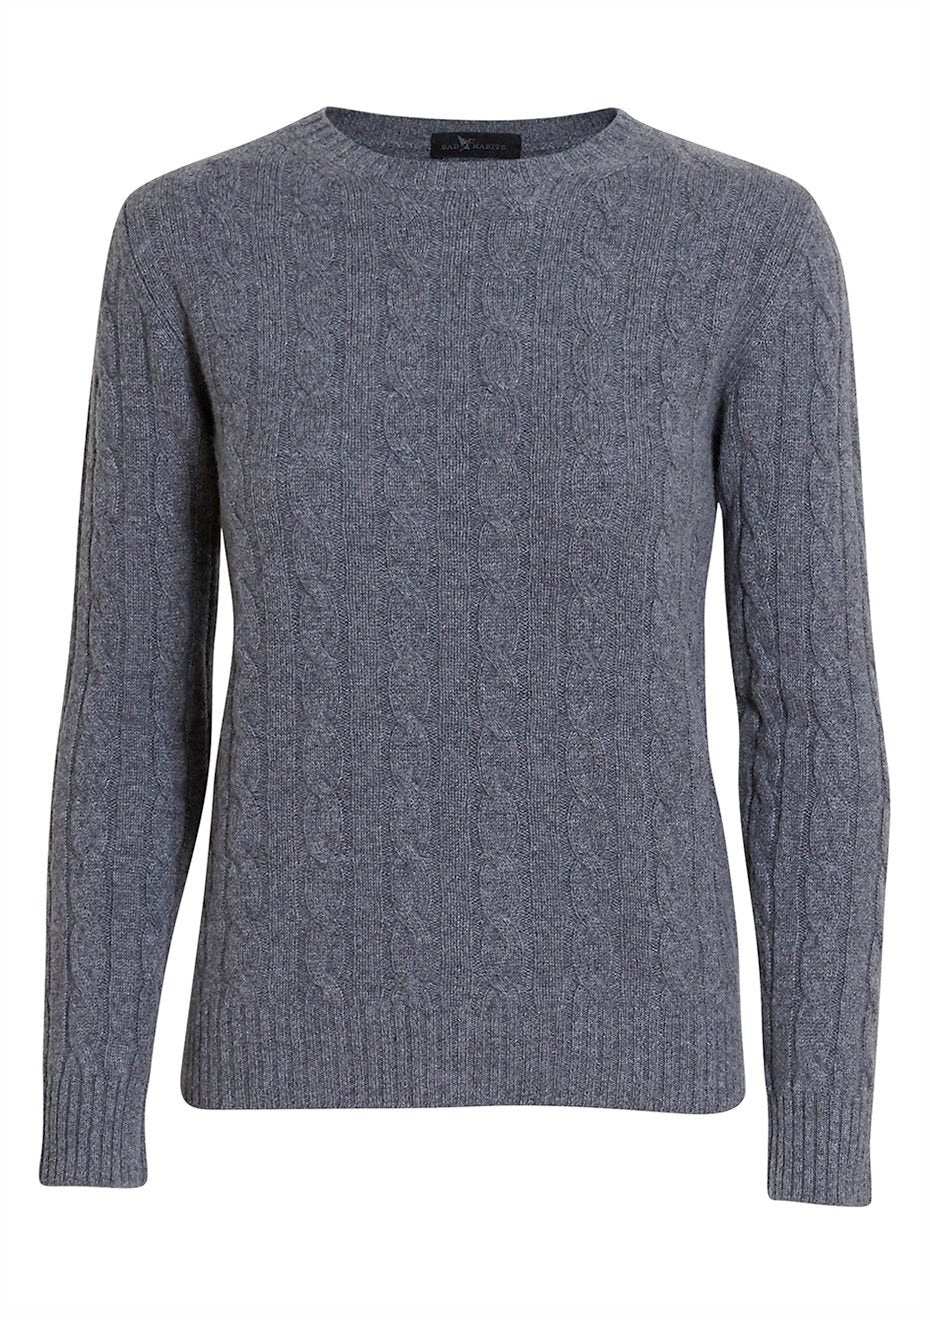 Grey Cashmere Cable-knit Sweater